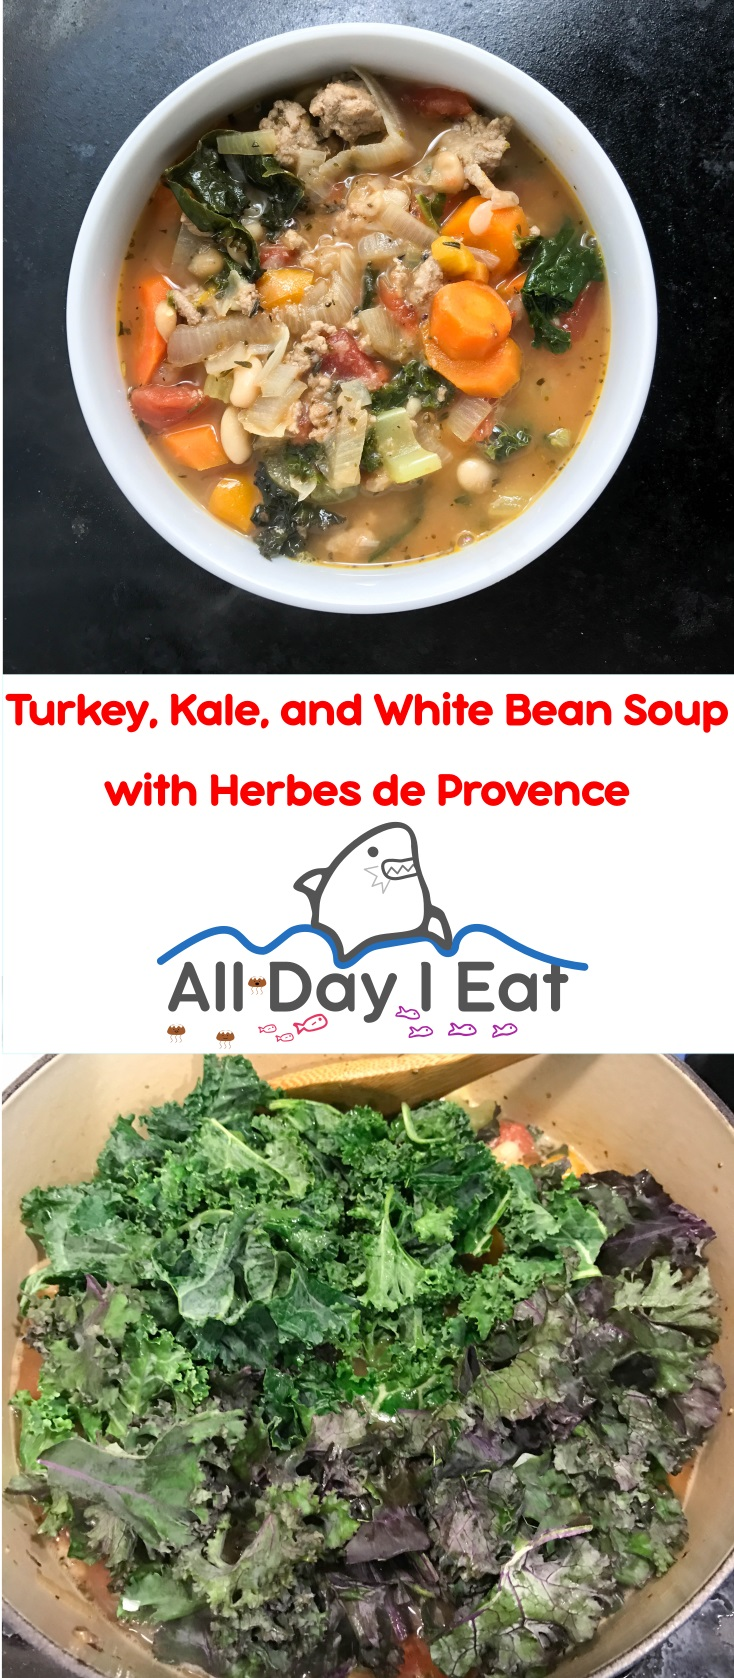 Turkey, Kale, and White Bean Soup with Herbes de Provence | www.alldayieat.com